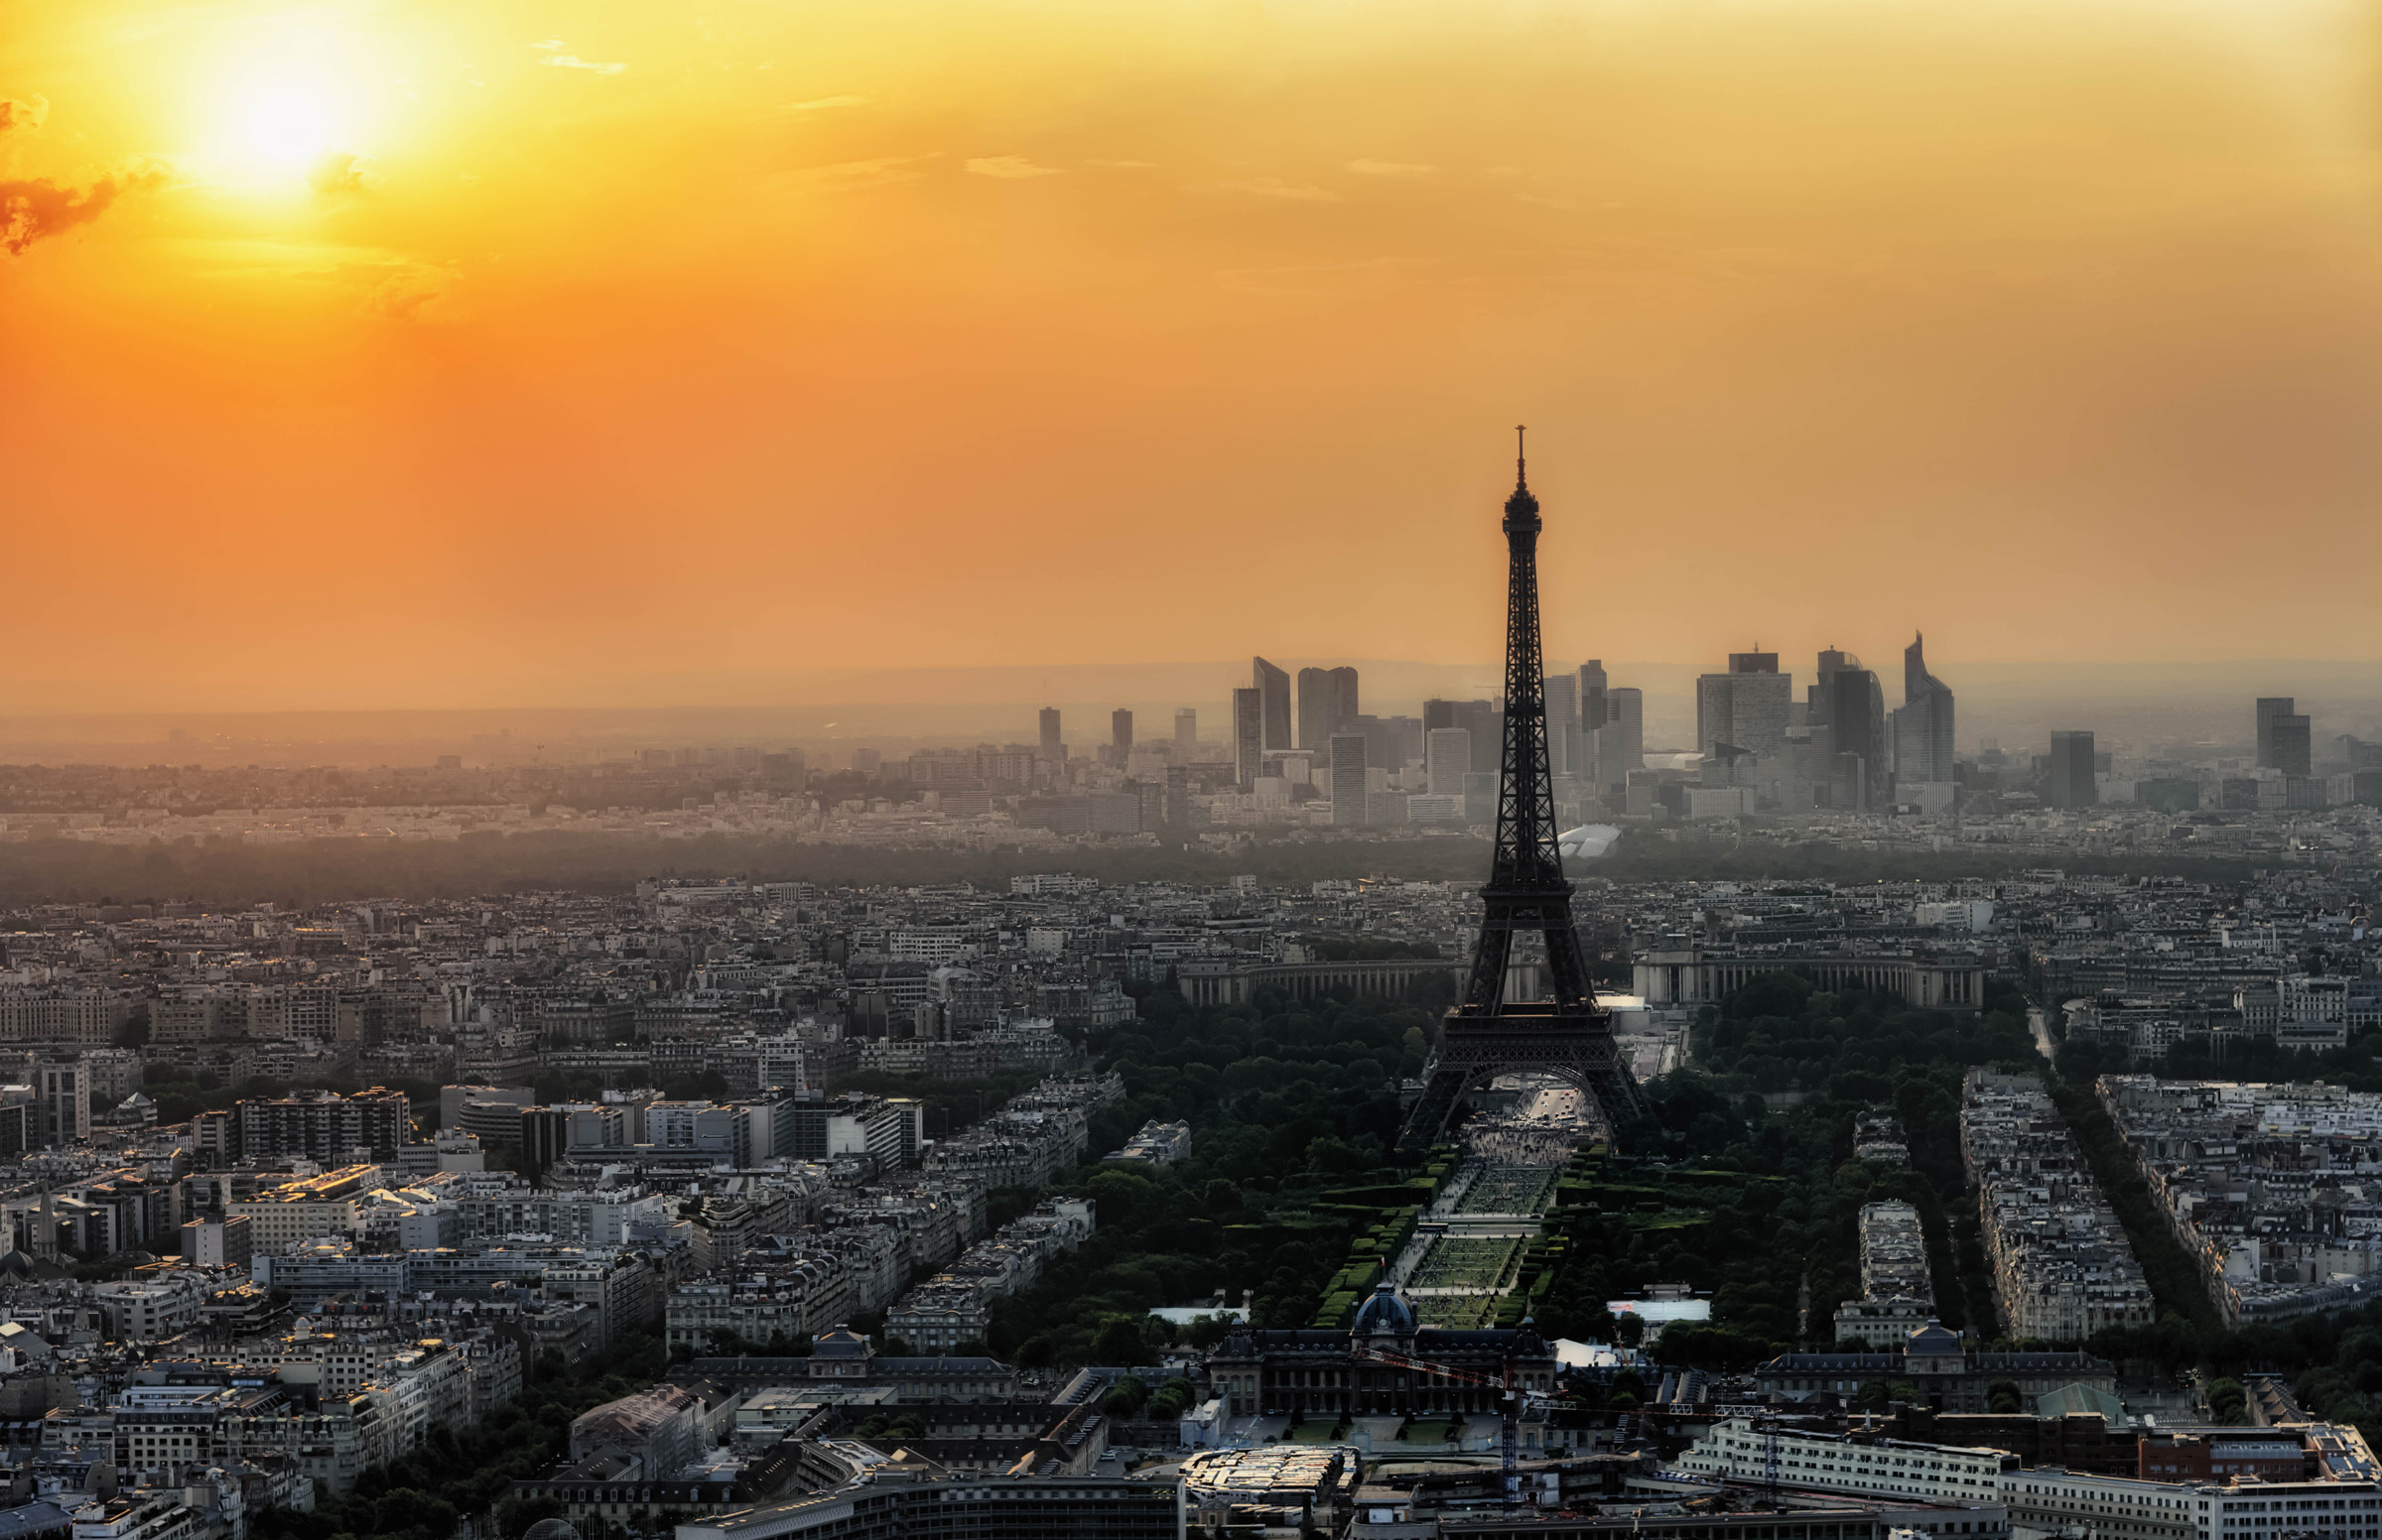 Skyline in Paris, France - by Joe deSousa